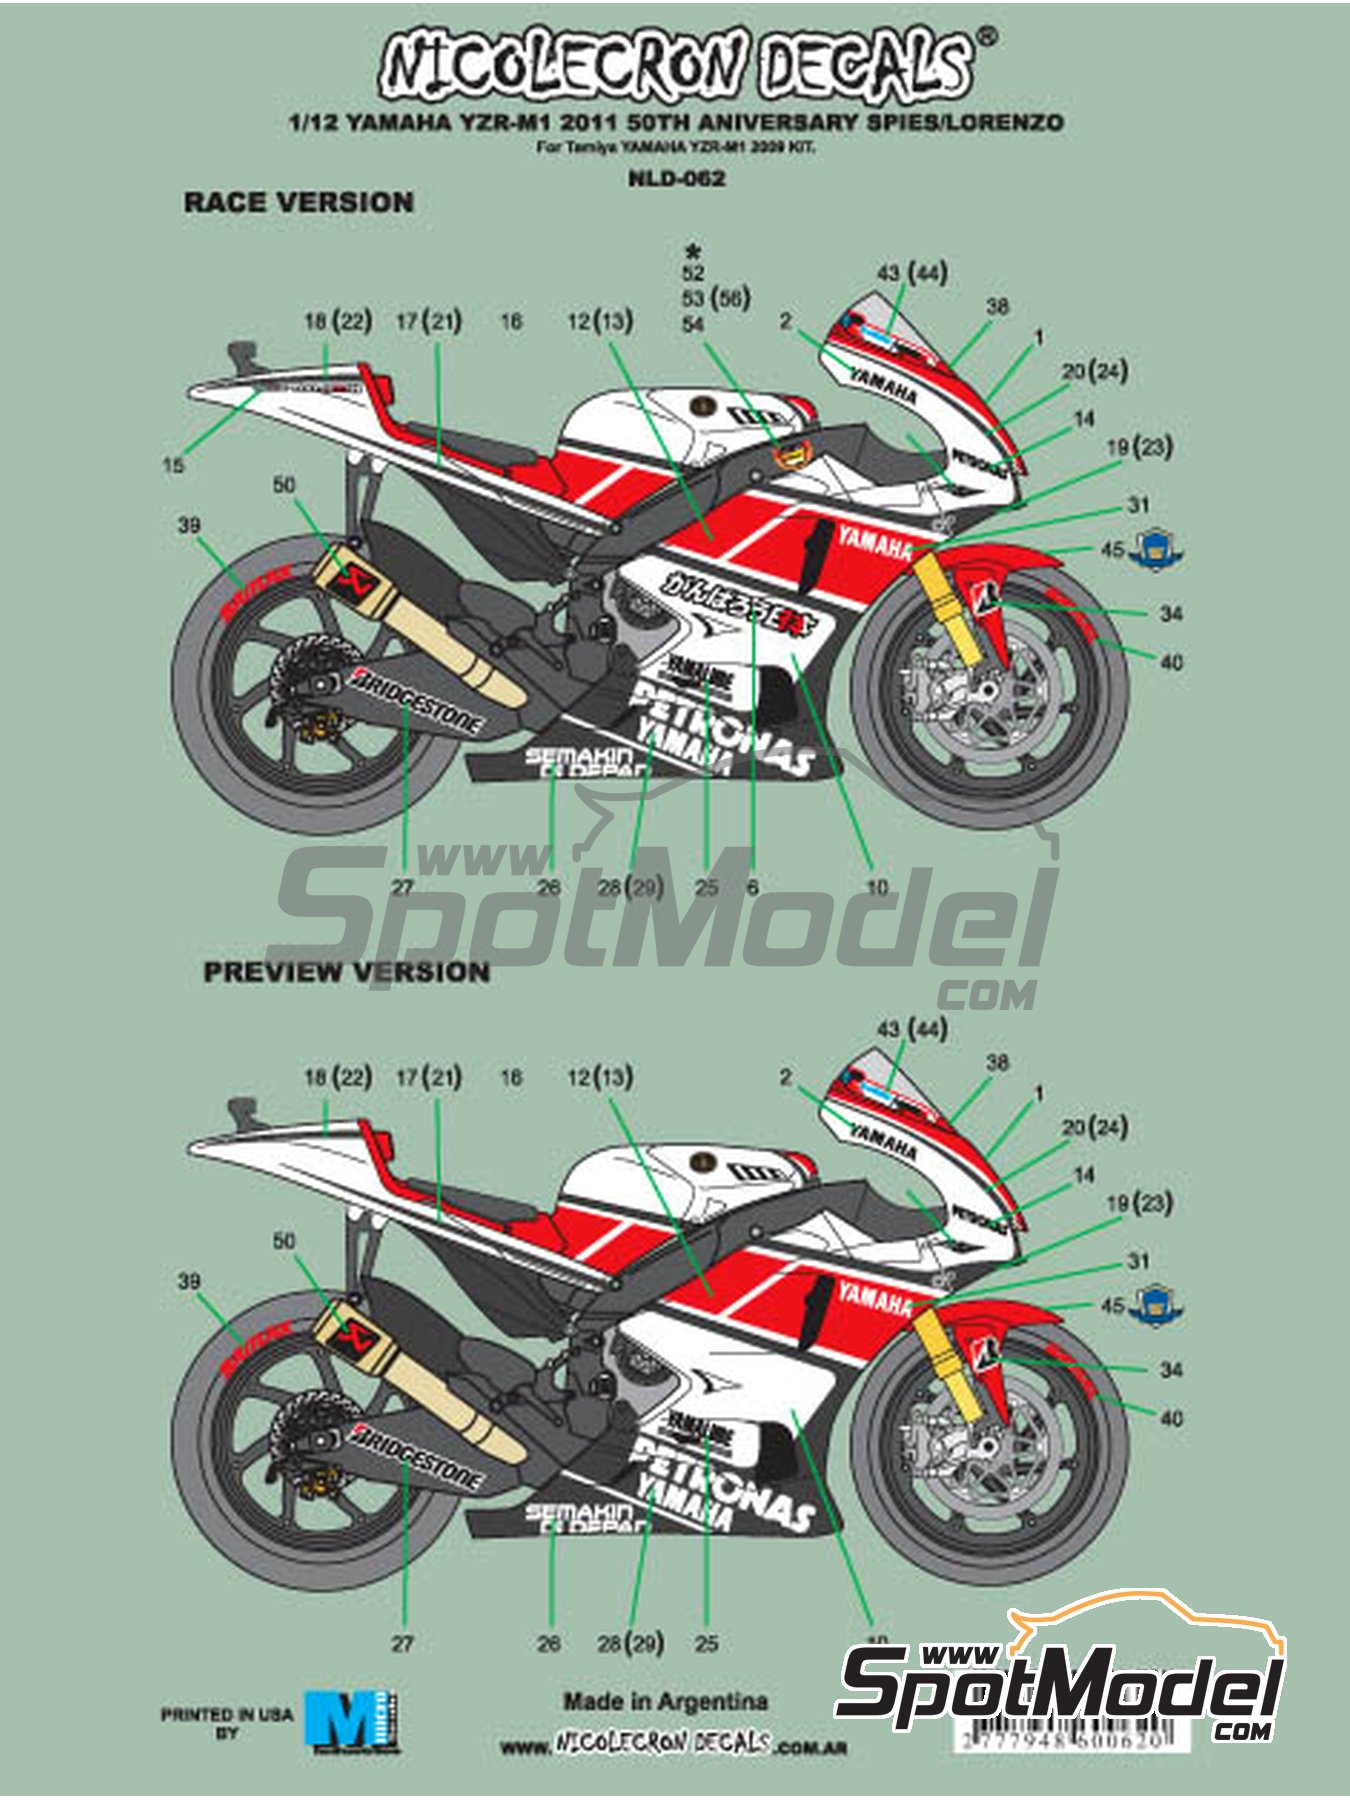 Yamaha YZR-M1 Petronas - Motorcycle World Championship 2011   Marking / livery in 1/12 scale manufactured by Nicolecron Decals (ref.NLD-062) image